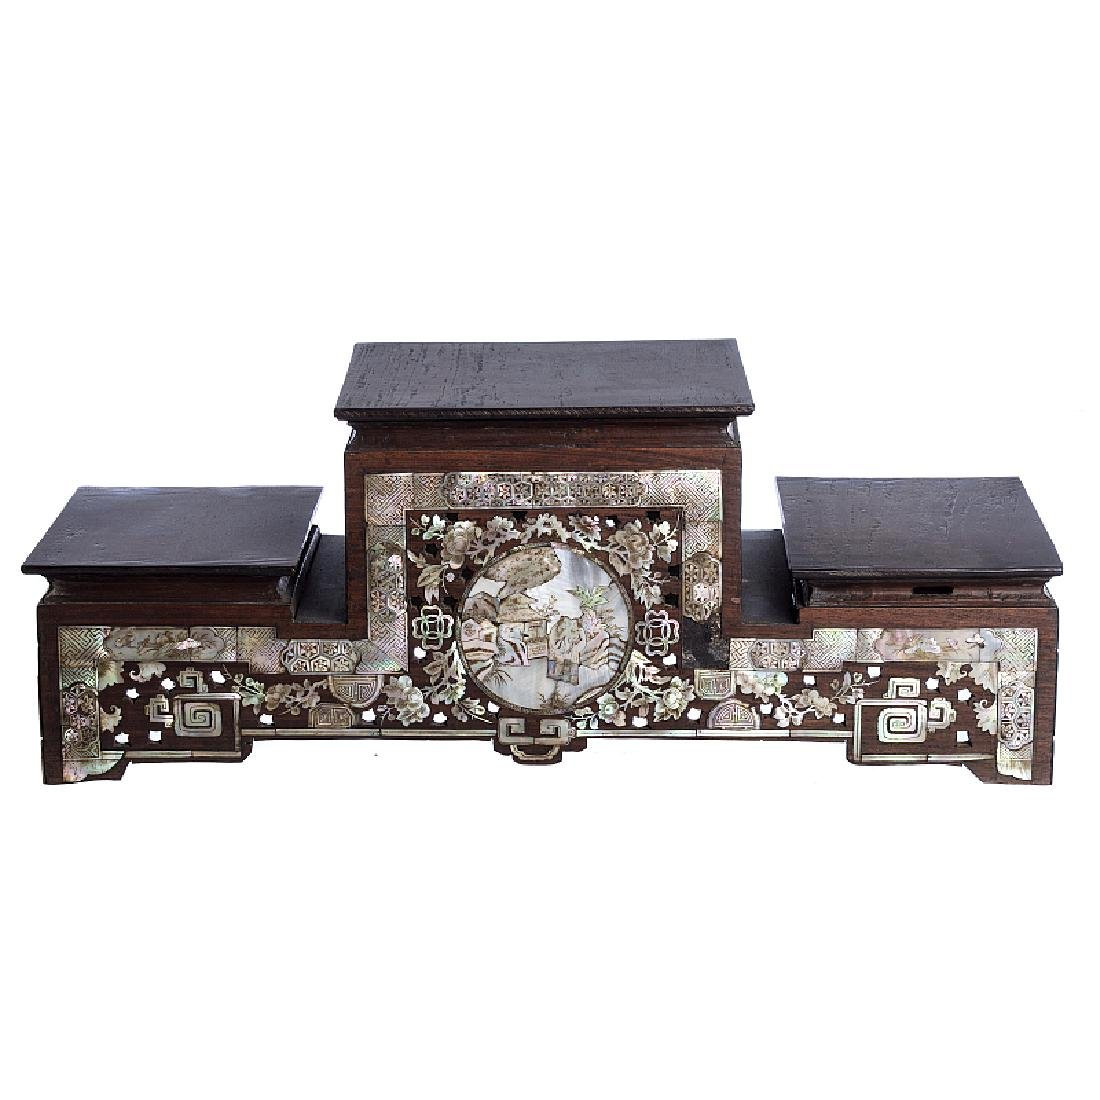 Chinese altar with inlaid mother of pearl